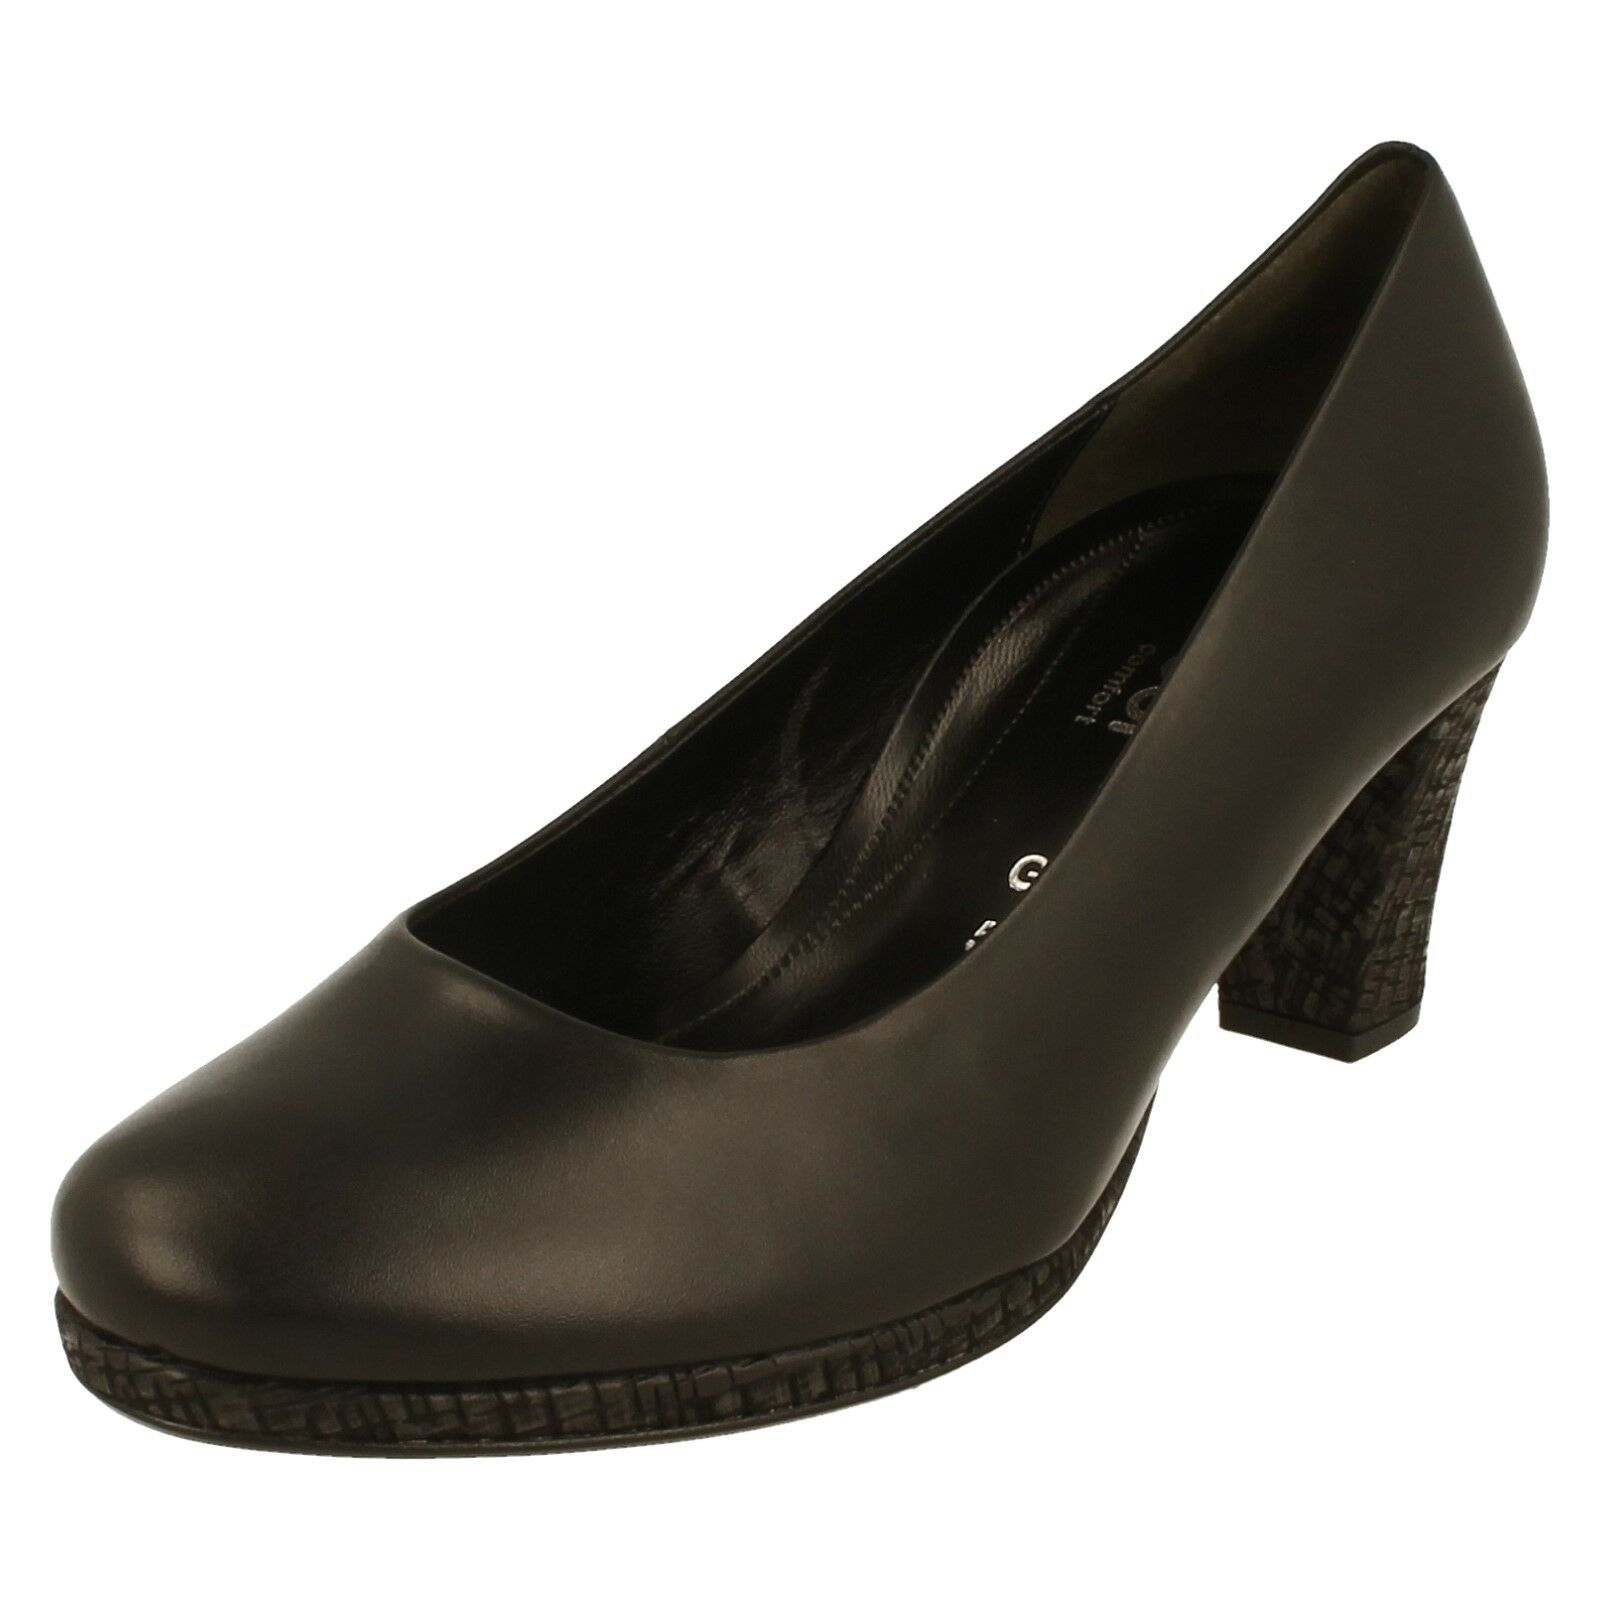 Damen Gabor Pumps - 52190